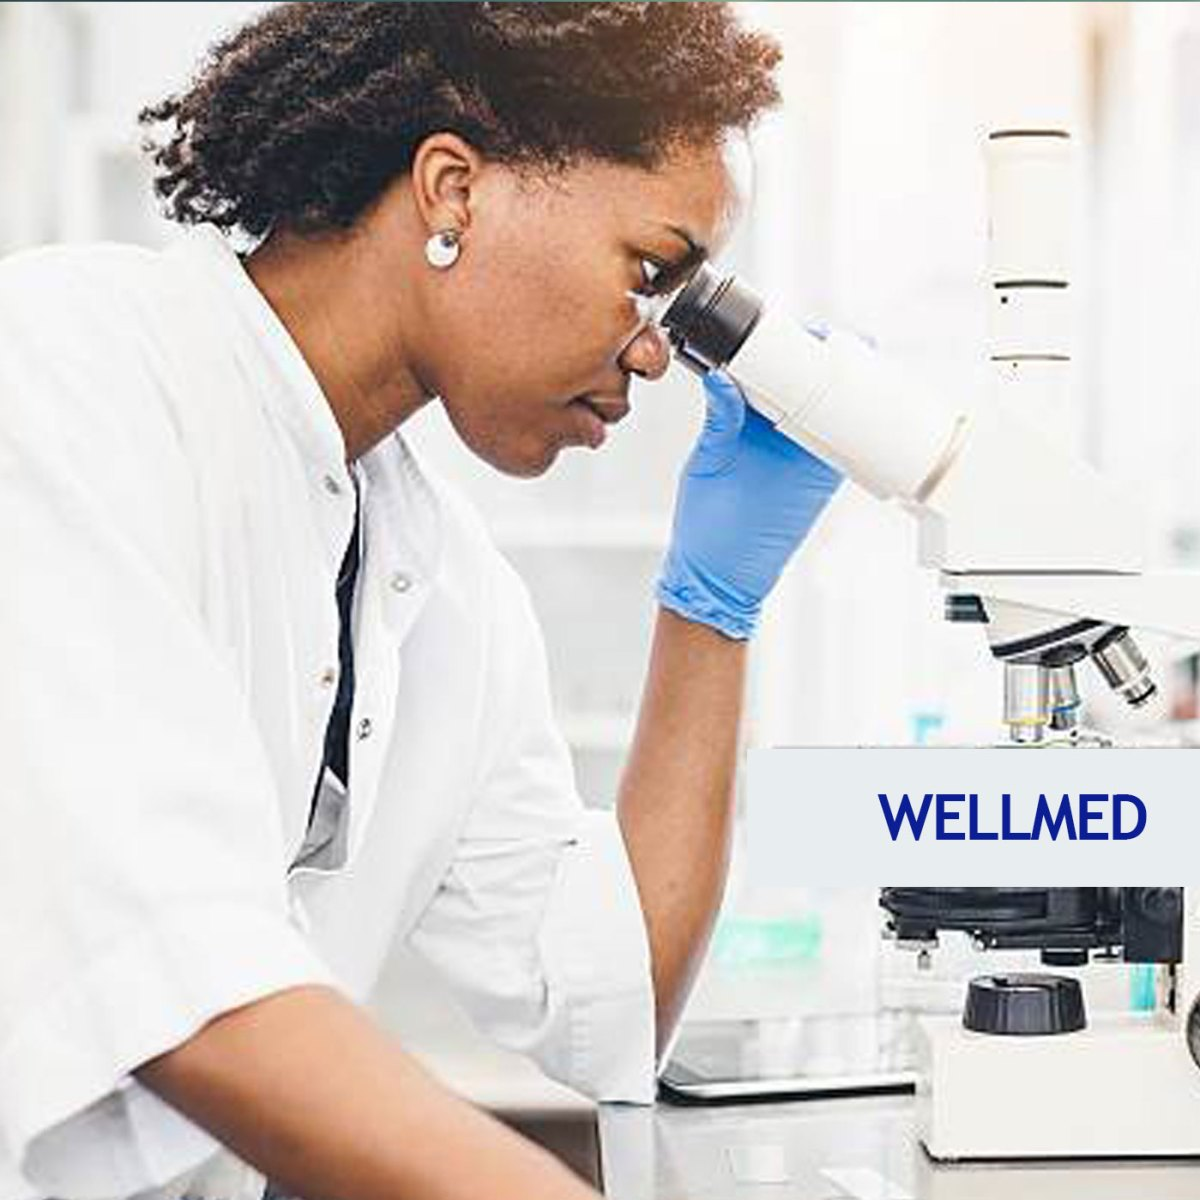 WellMed_Lab.jpg?fit=1200%2C1200&ssl=1